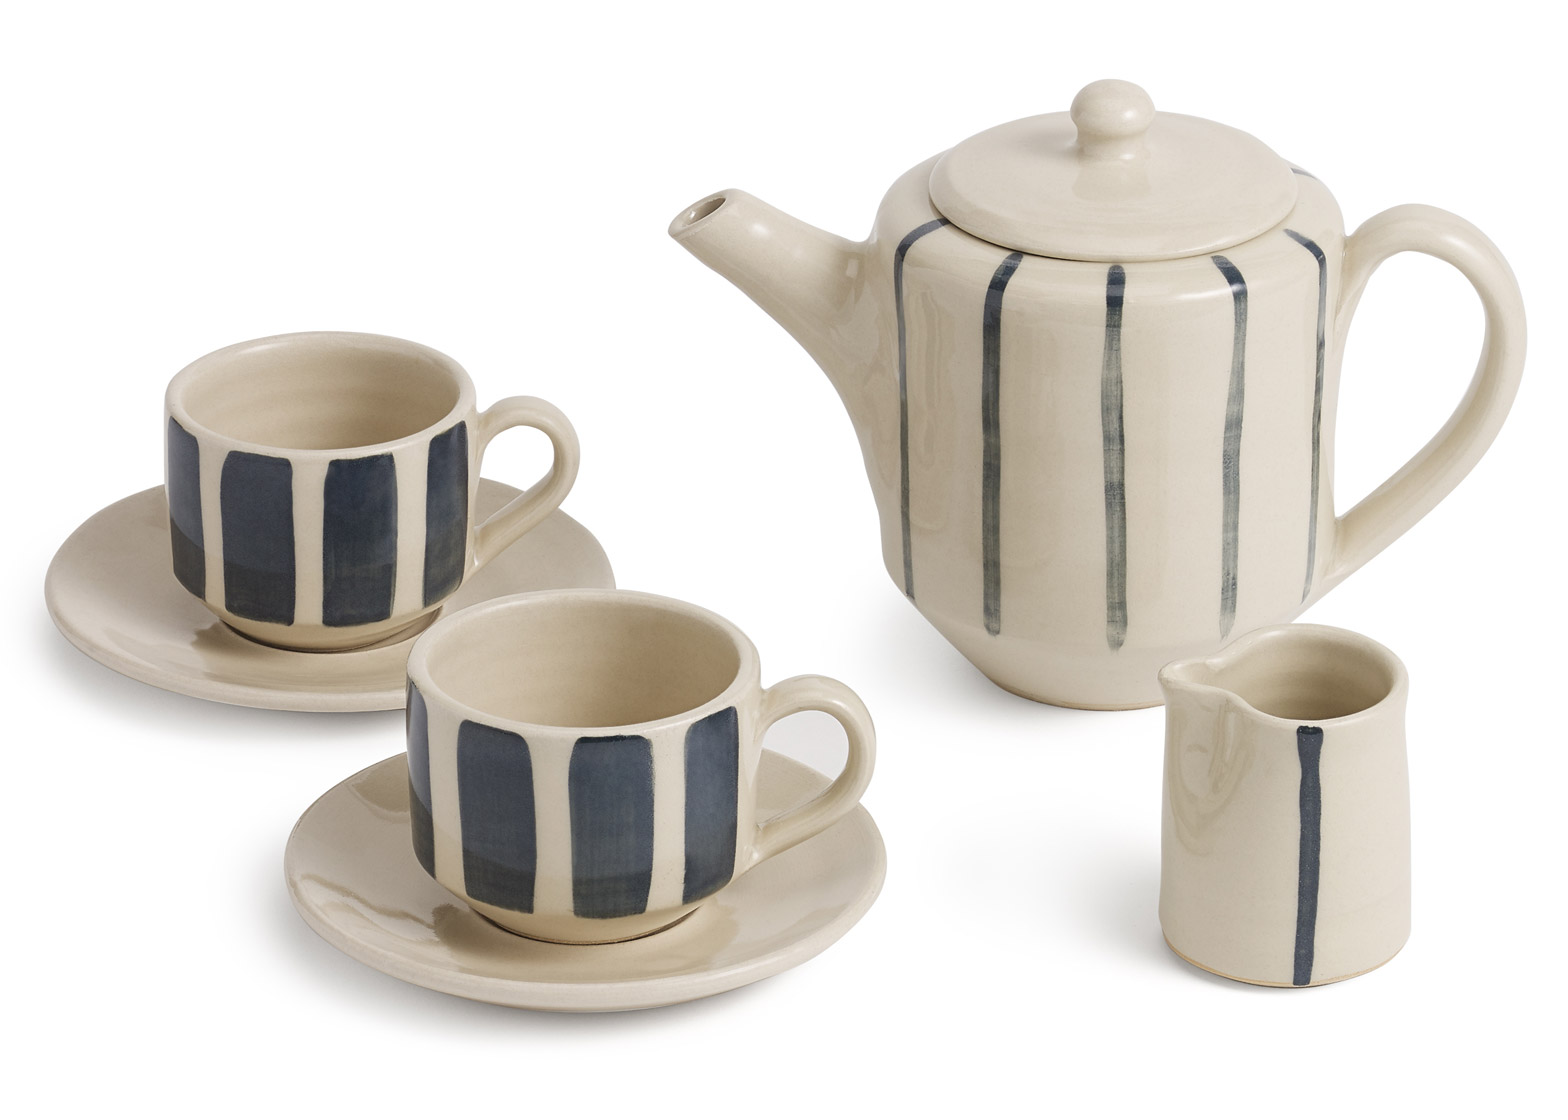 The Whitchford tea set from the Soho Home collection